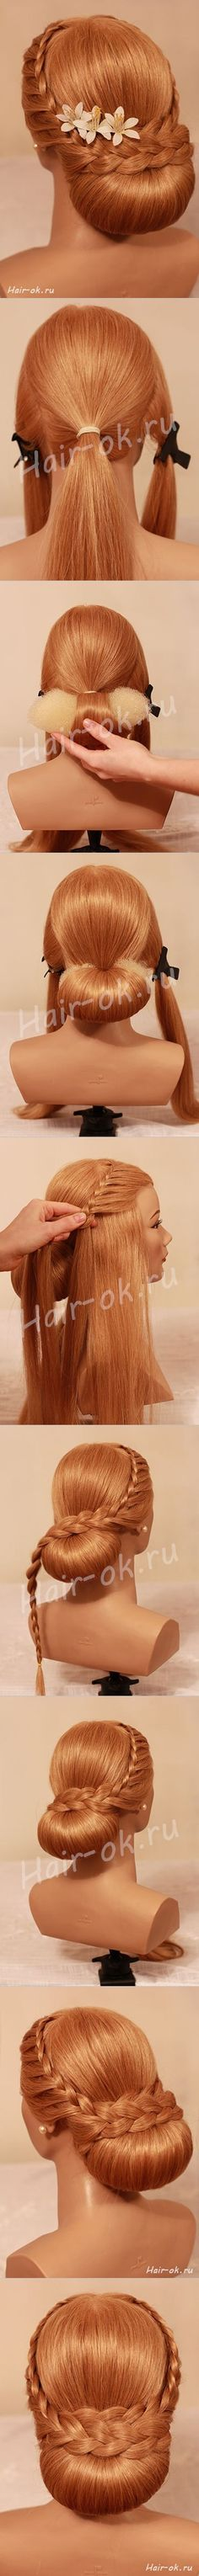 braided hair tutorial                                                                                                                                                                                 More